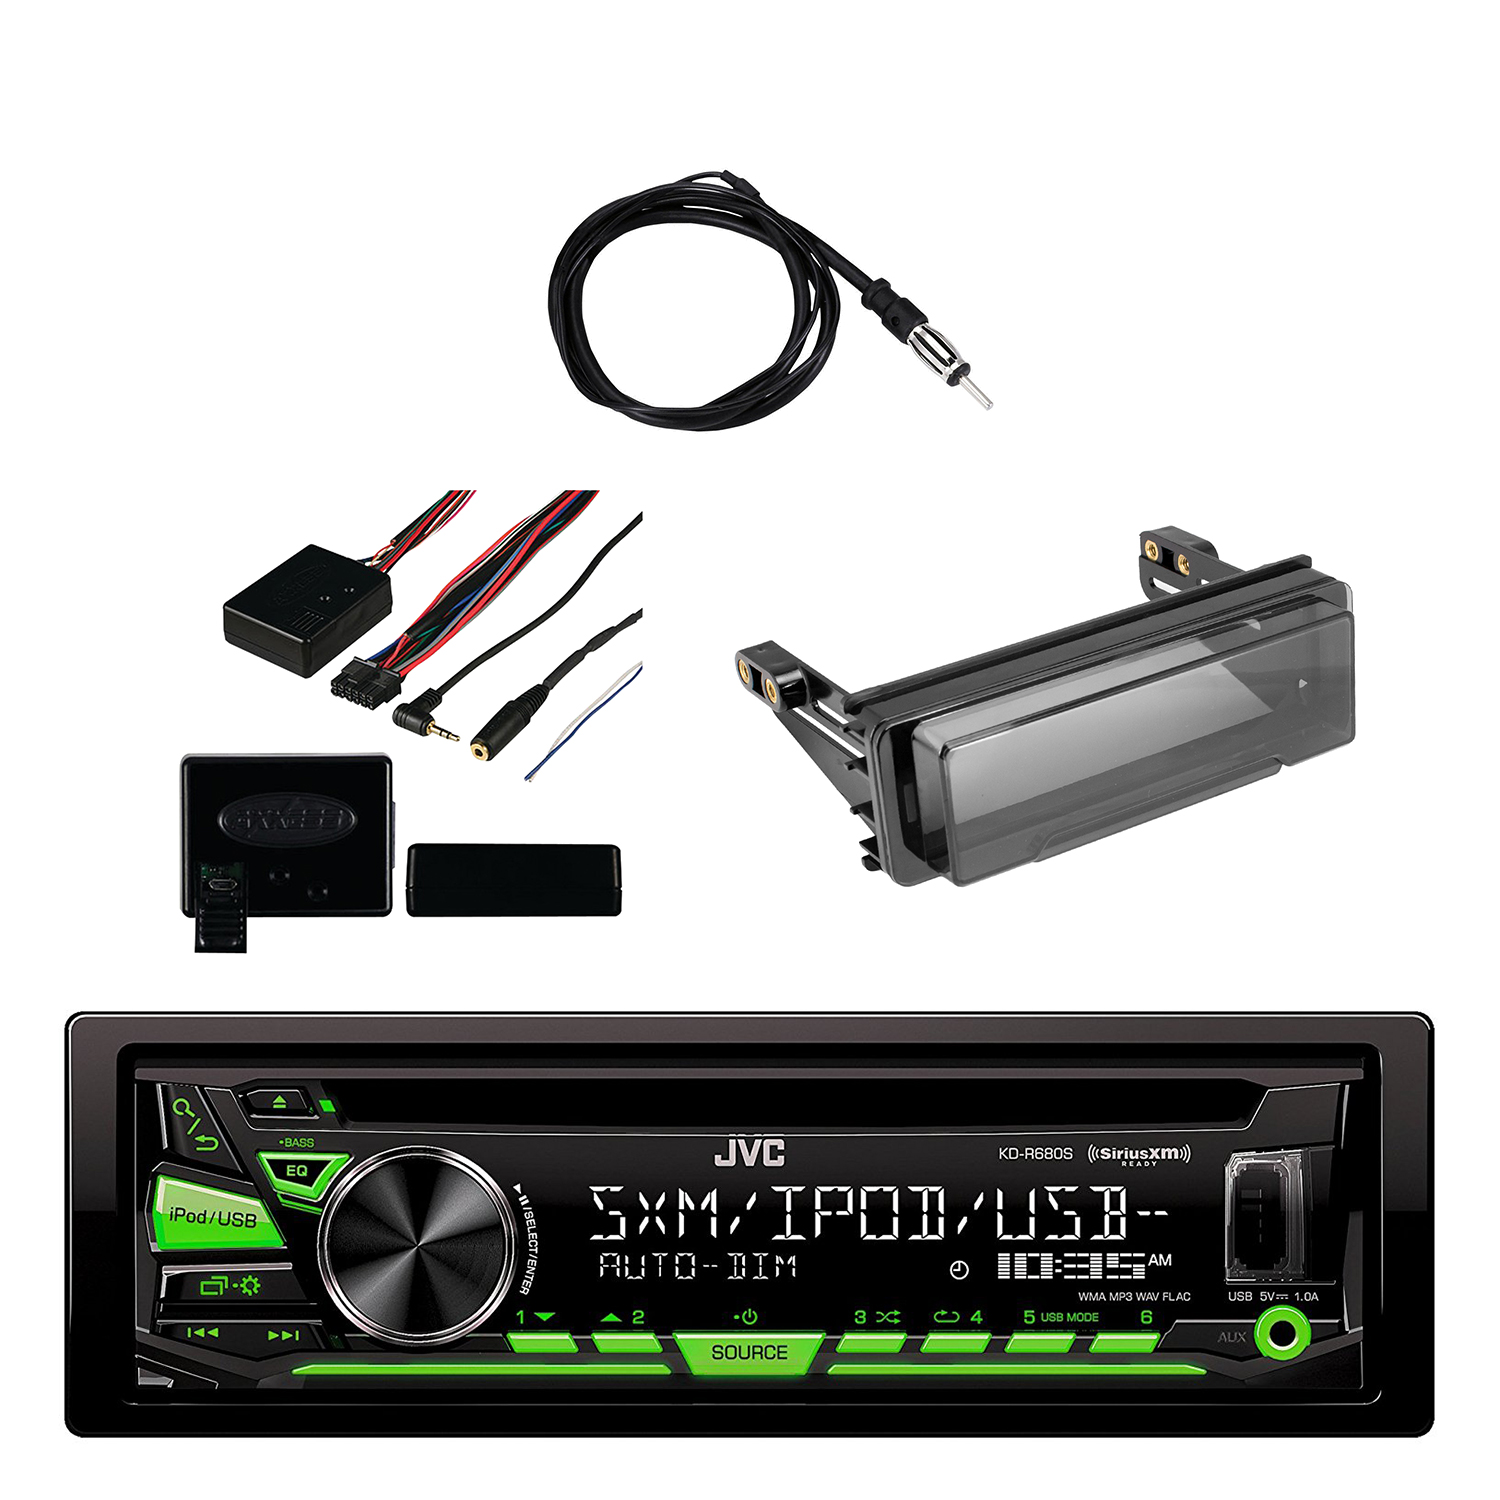 JVC Single DIN In-Dash CD/AM/FM/ Car Stereo Receiver with...